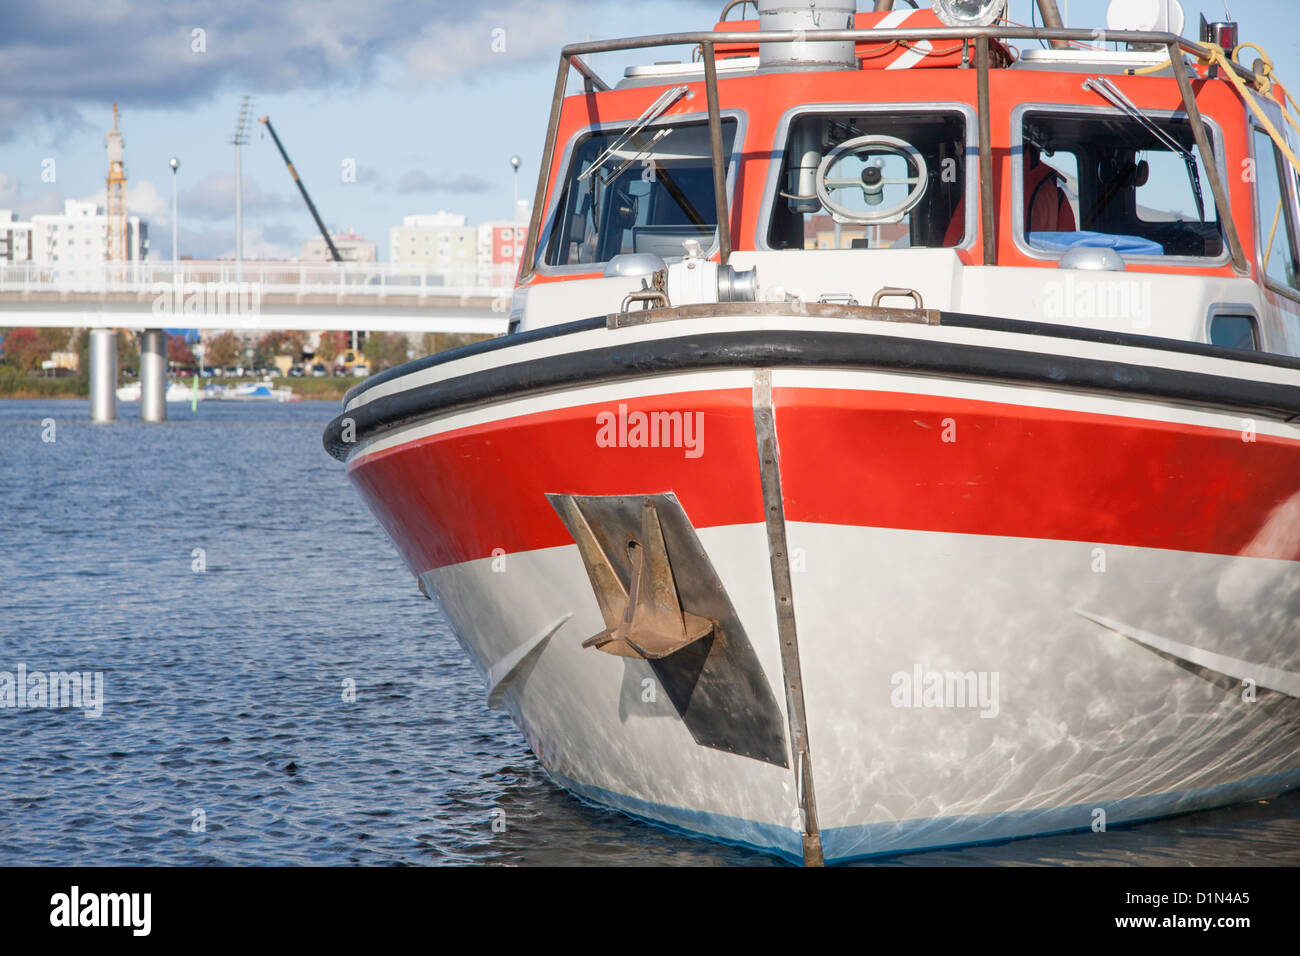 Finland Oulu bay boat harbour lifestyle luxury ocean - Stock Image